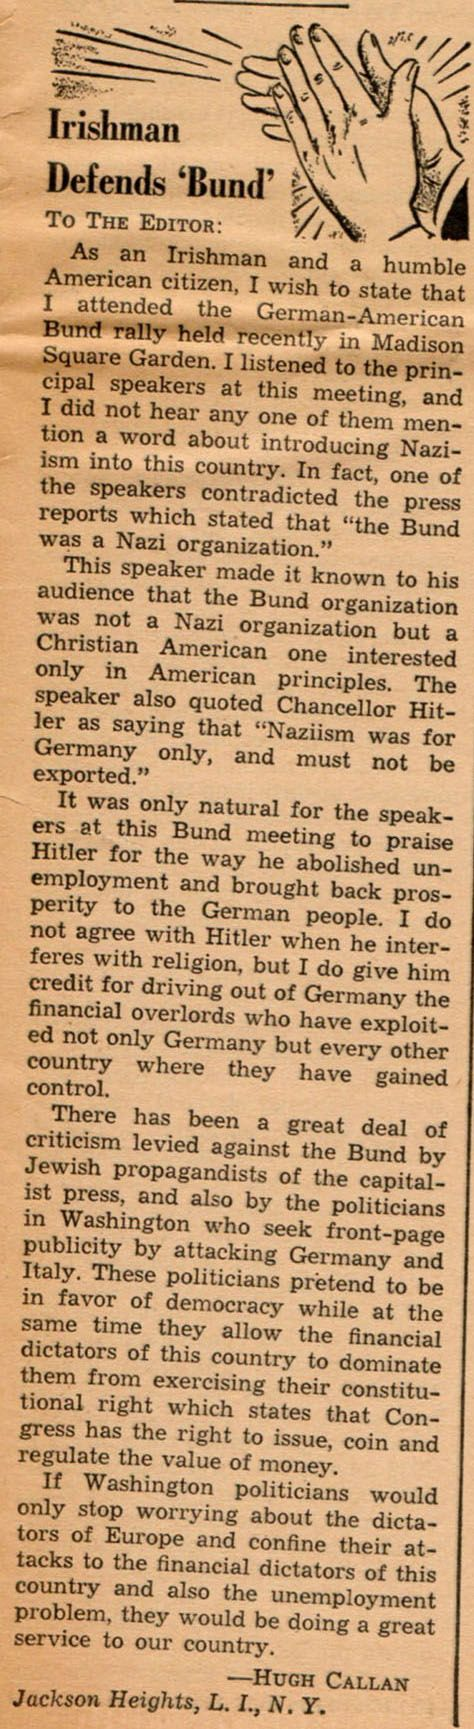 "Irishman Defends ""Bund""' --An interesting letter from the newspaper 'Social Justice' (April 3, 1939), done by Father Charles Coughlin."